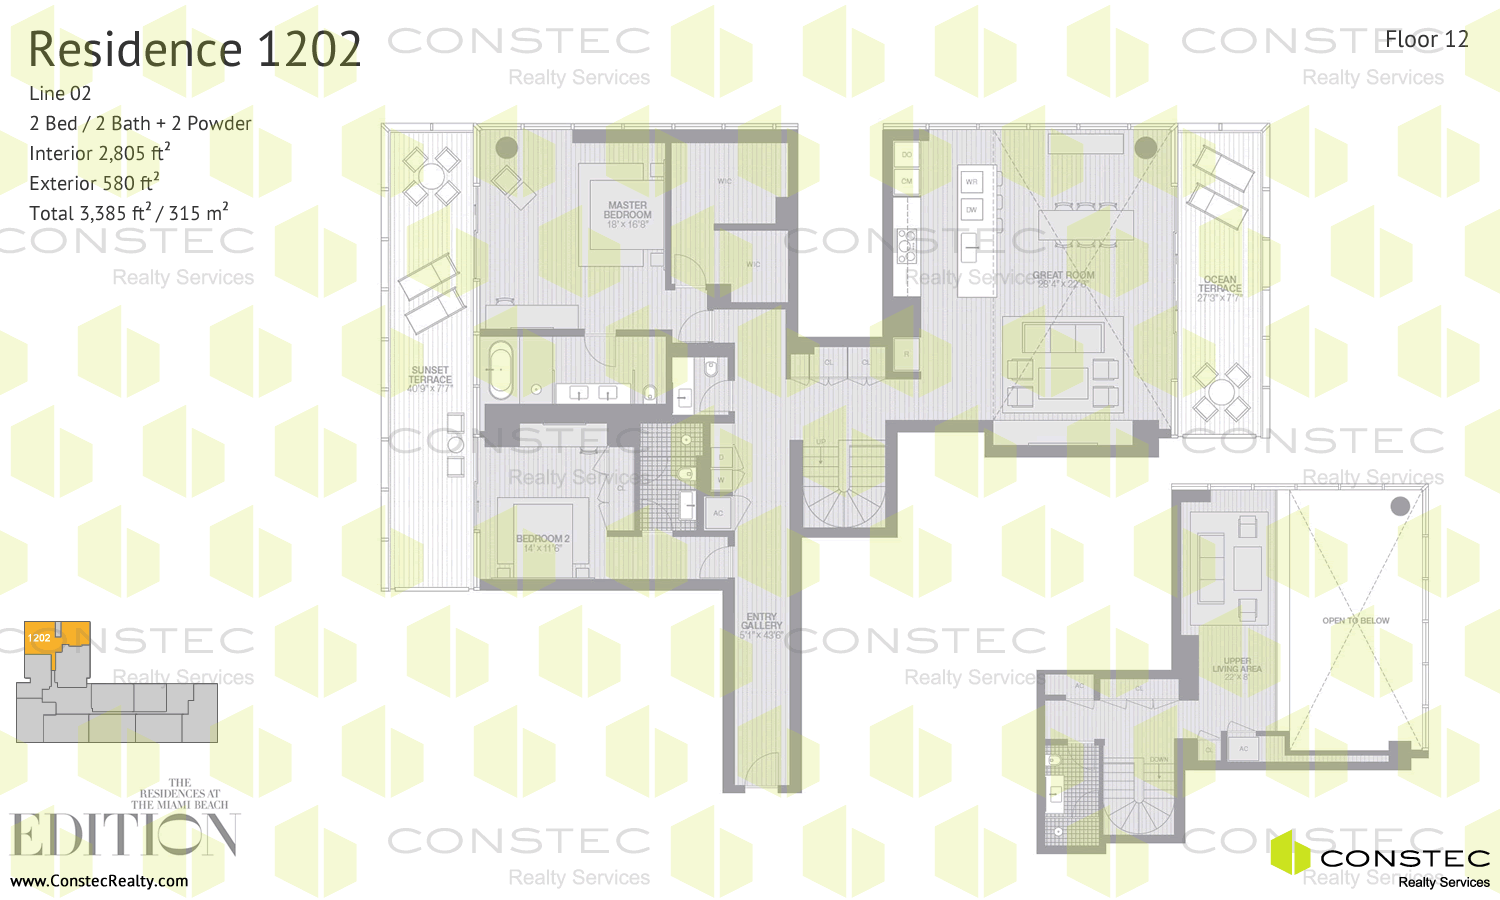 the residences at the miami beach edition floor plans